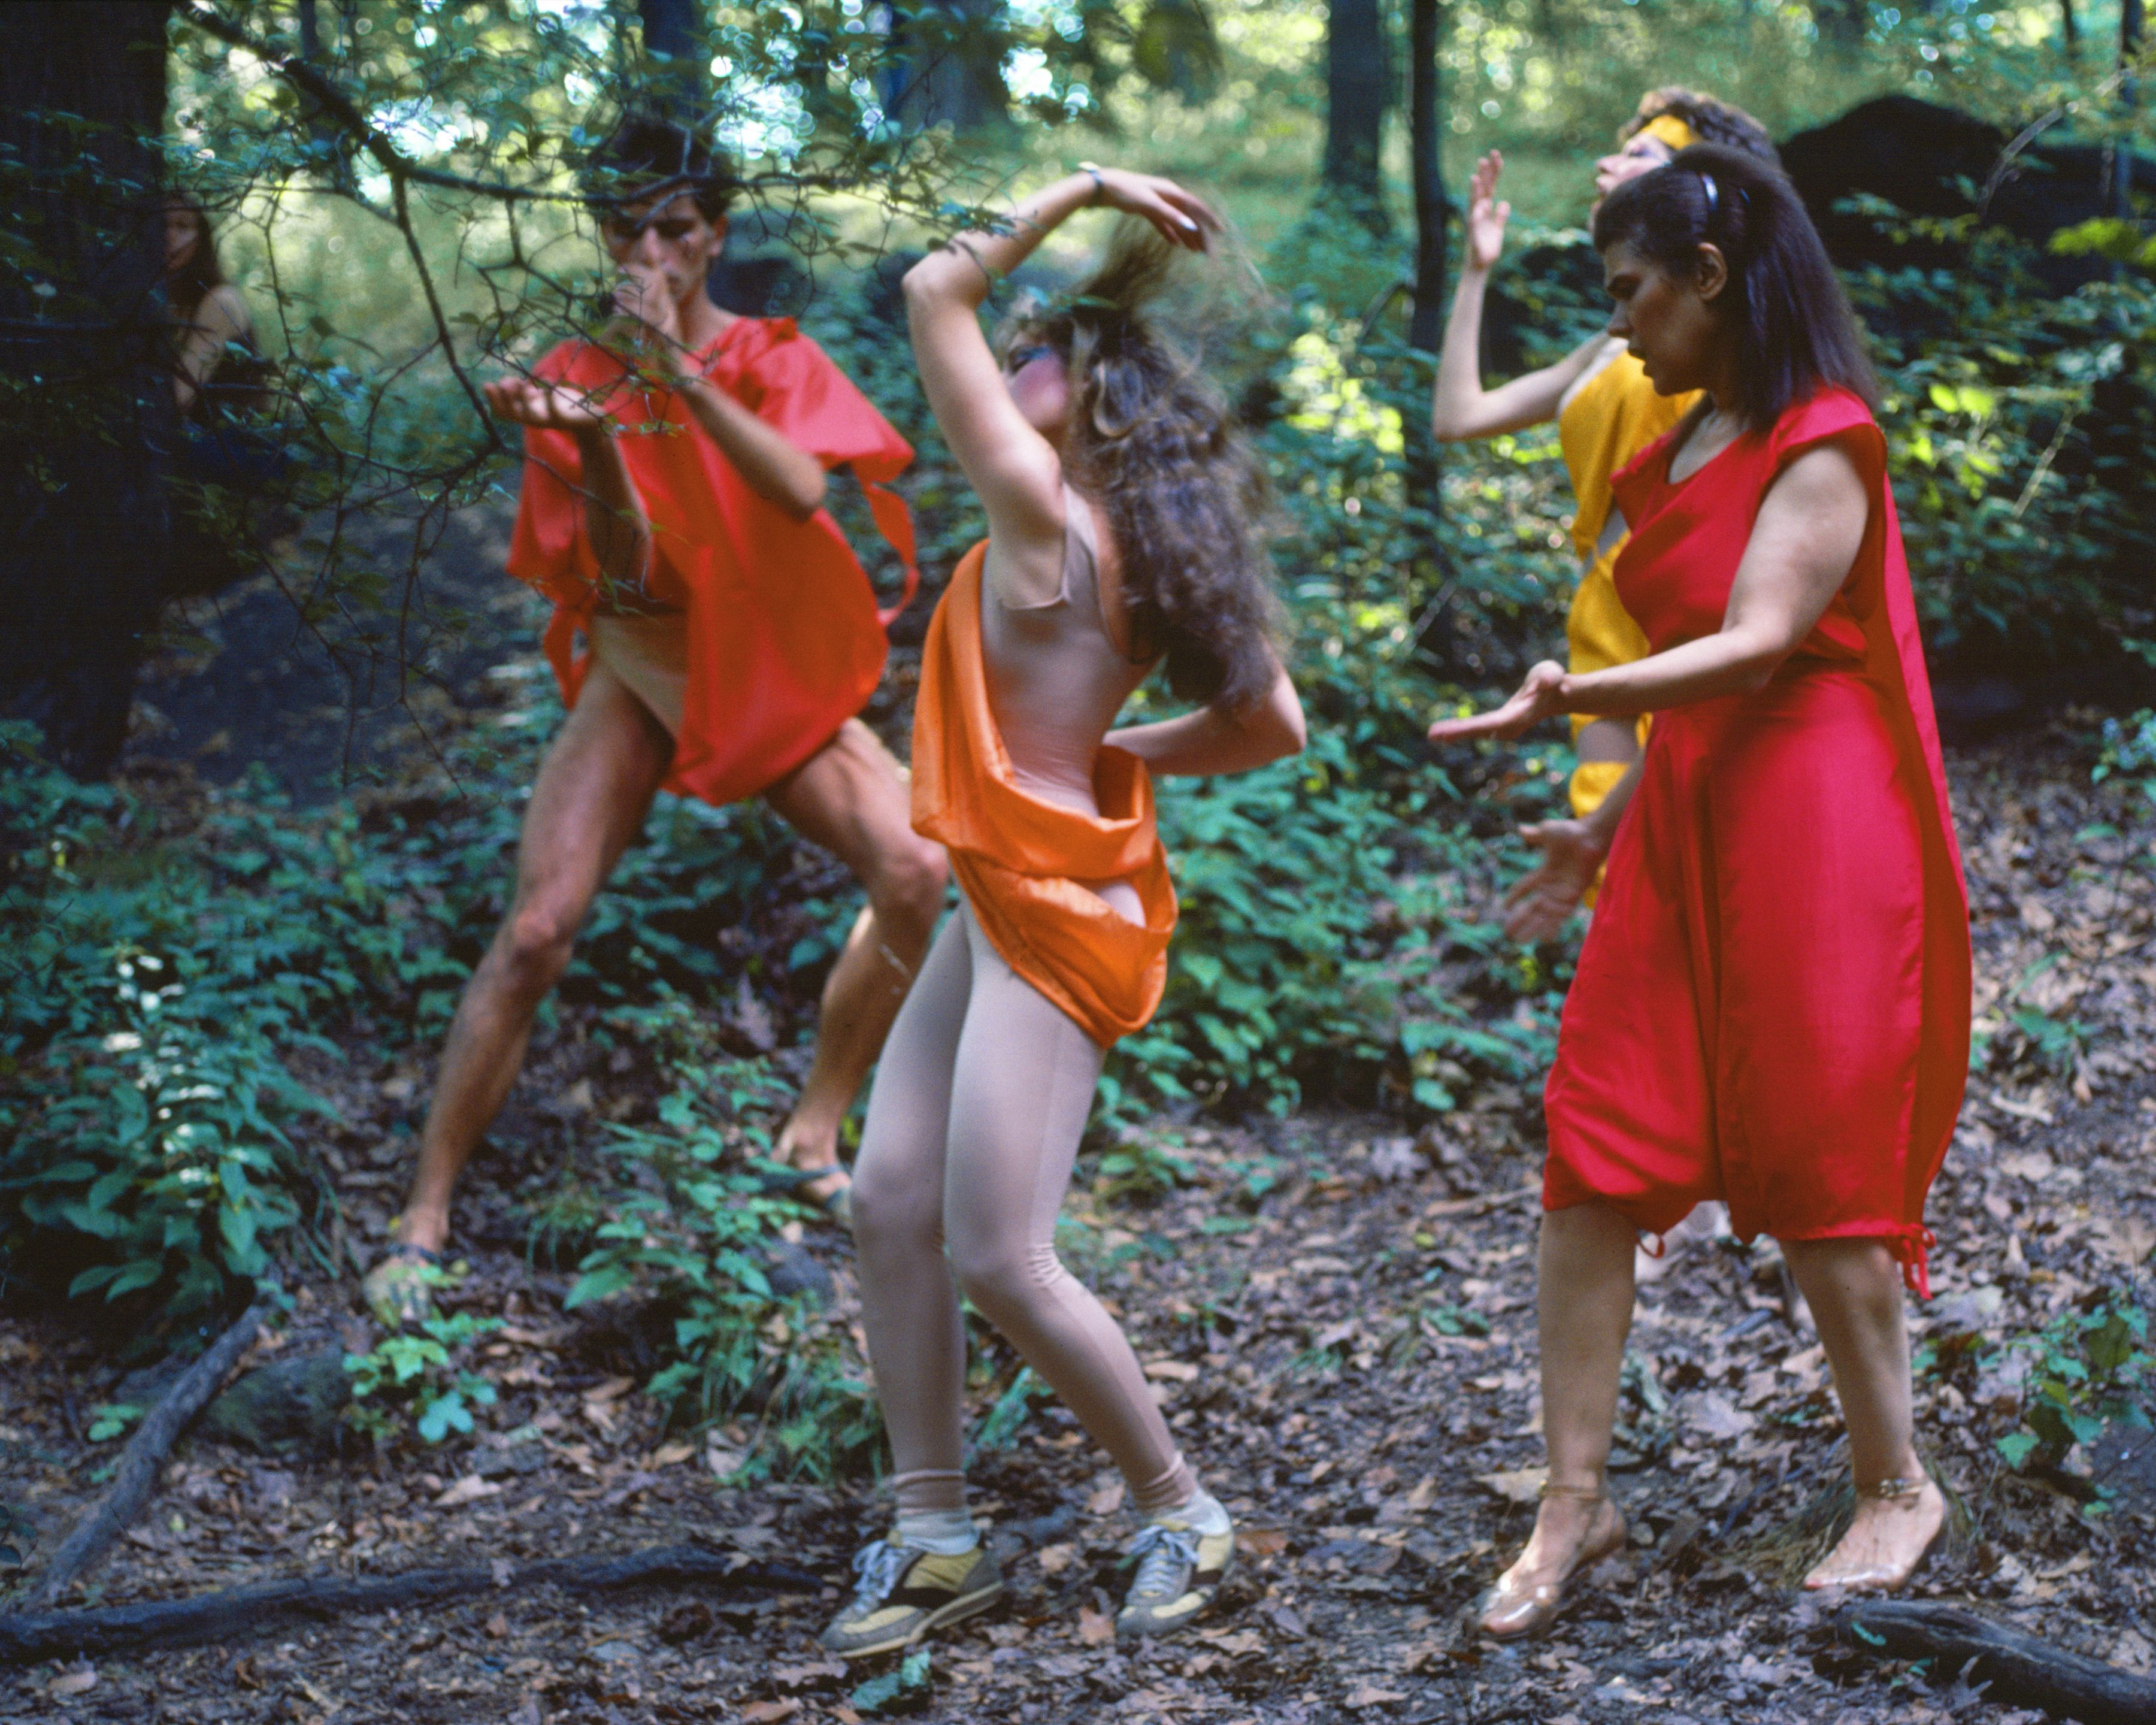 Rivers, First Draft: The Debauchees dance in place, and the Woman in Red catches up to them, 1982/2015, Digital C-print from Kodachrome 35mm slides in 48 parts, 16h x 20w in (40.64h x 50.80w cm)